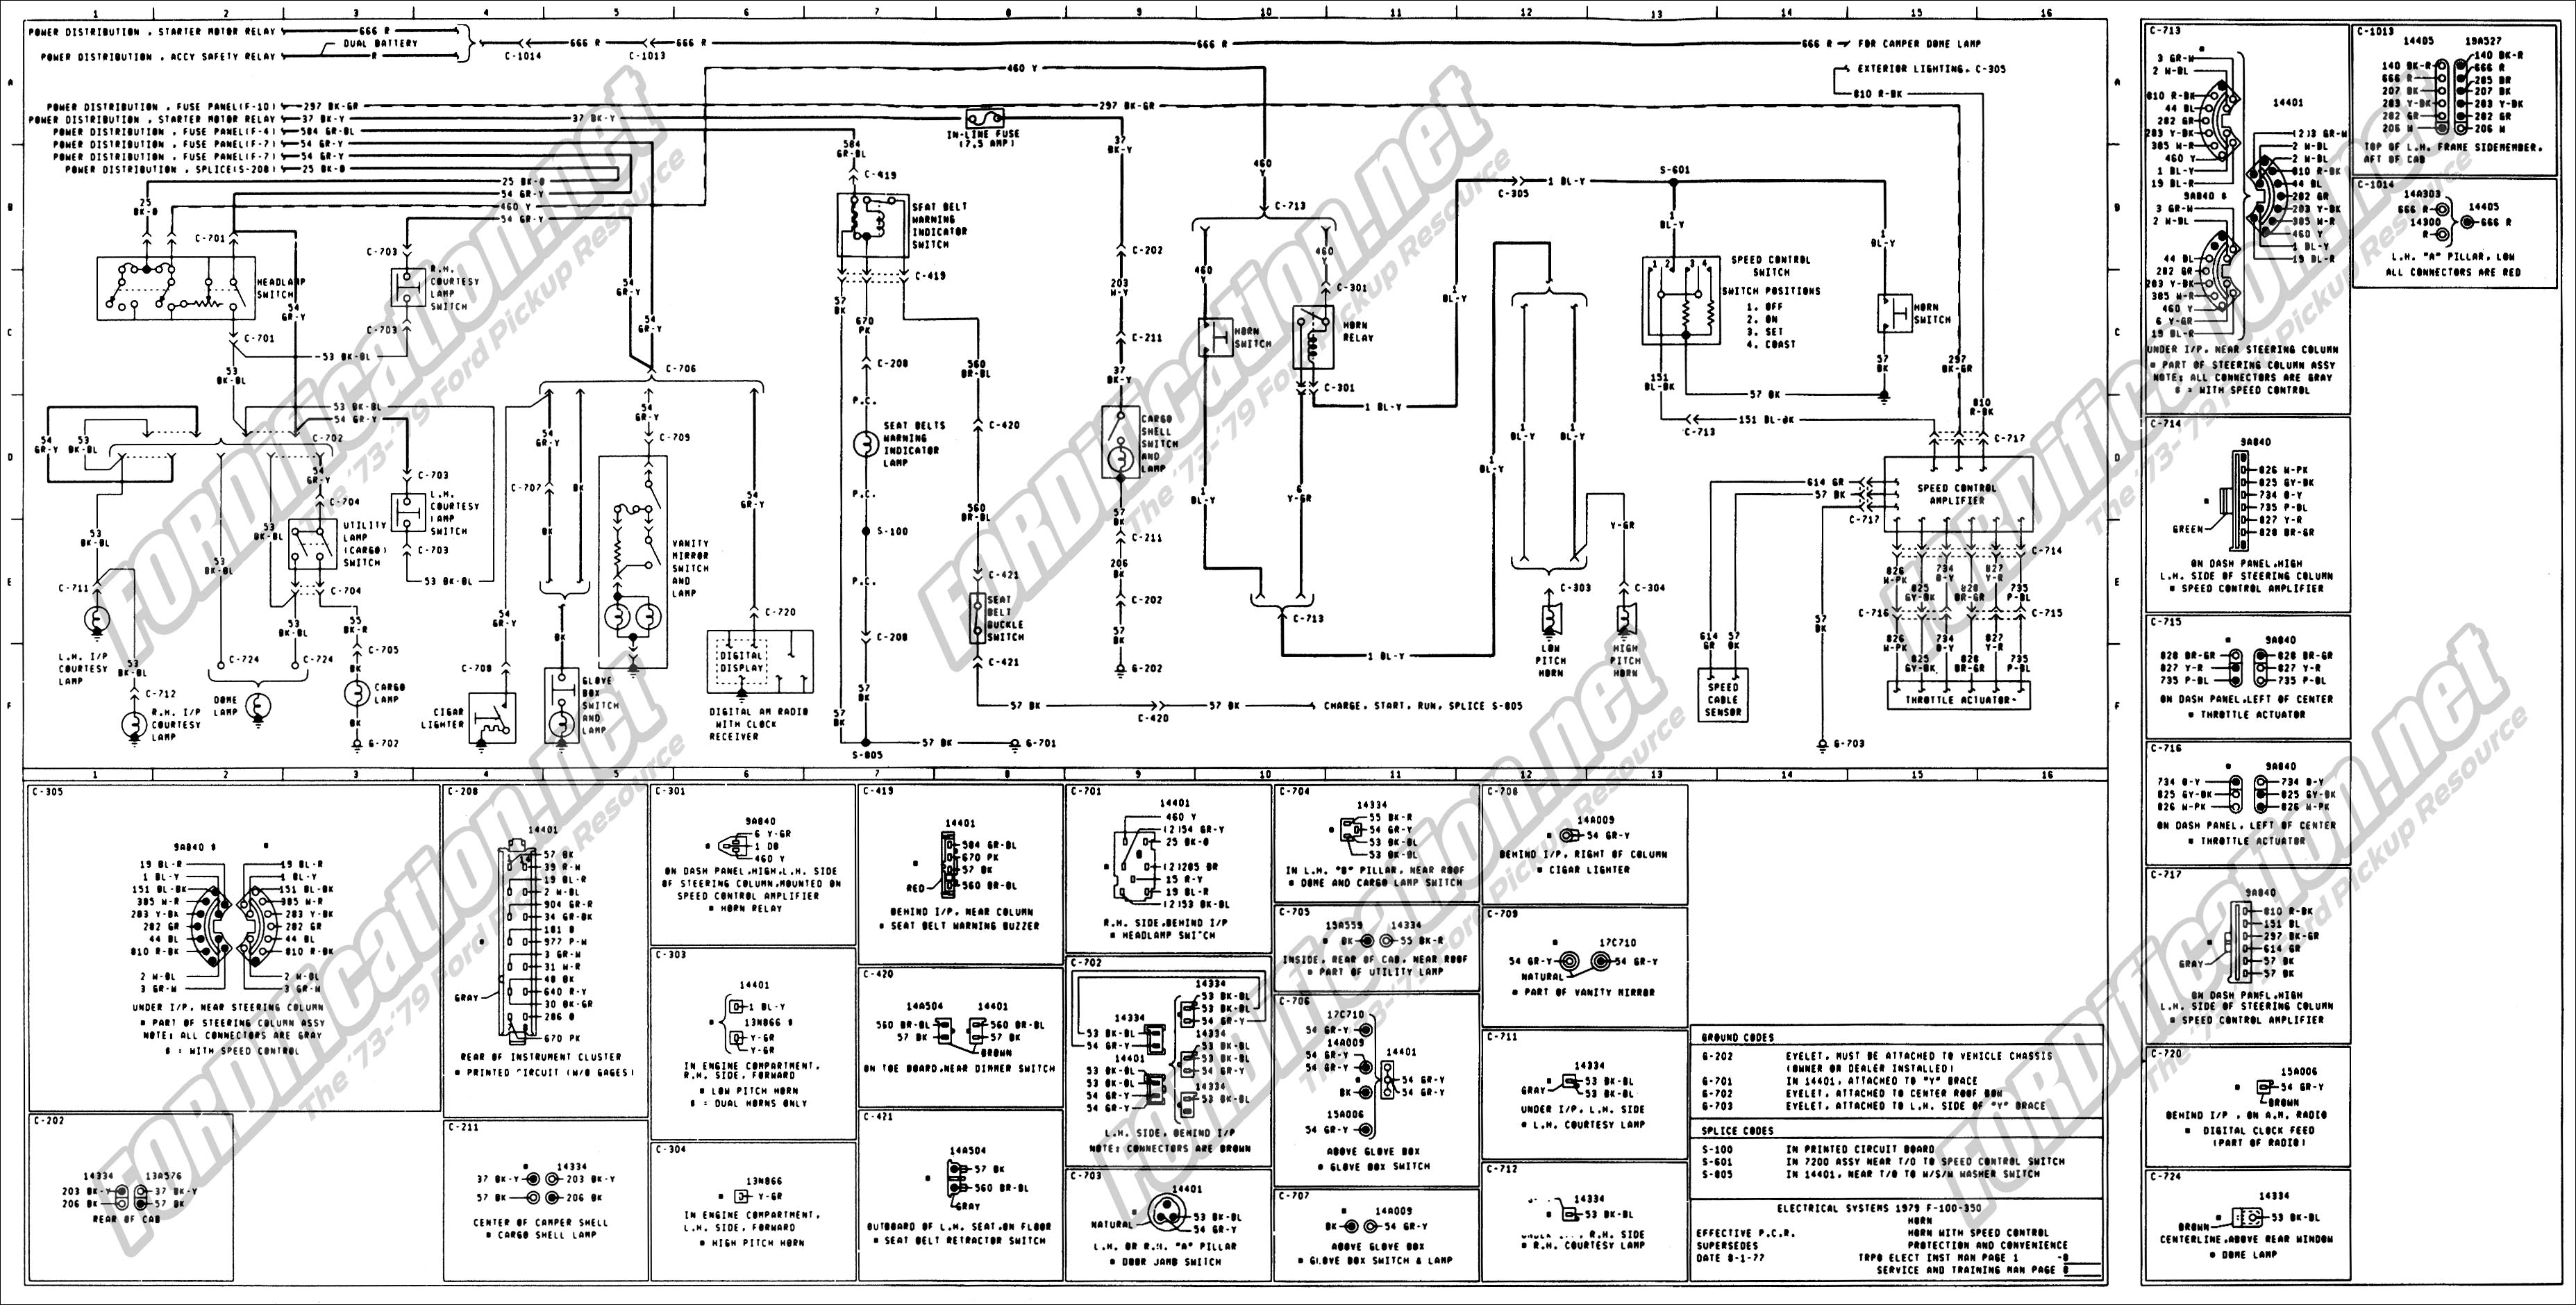 ford ignition wiring diagram, chevy ignition wiring diagram, gmc ignition wiring diagram, freightliner ignition wiring diagram, hino ignition wiring diagram, evinrude ignition wiring diagram, subaru ignition wiring diagram, honda ignition wiring diagram, toyota ignition wiring diagram, vw ignition wiring diagram, dodge ignition wiring diagram, mopar ignition wiring diagram, harley-davidson ignition wiring diagram, datsun ignition wiring diagram, gm ignition wiring diagram, willys ignition wiring diagram, kawasaki ignition wiring diagram, john deere ignition wiring diagram, chevrolet ignition wiring diagram, international ignition wiring diagram, on 1997 mercedes benz ignition wiring diagram